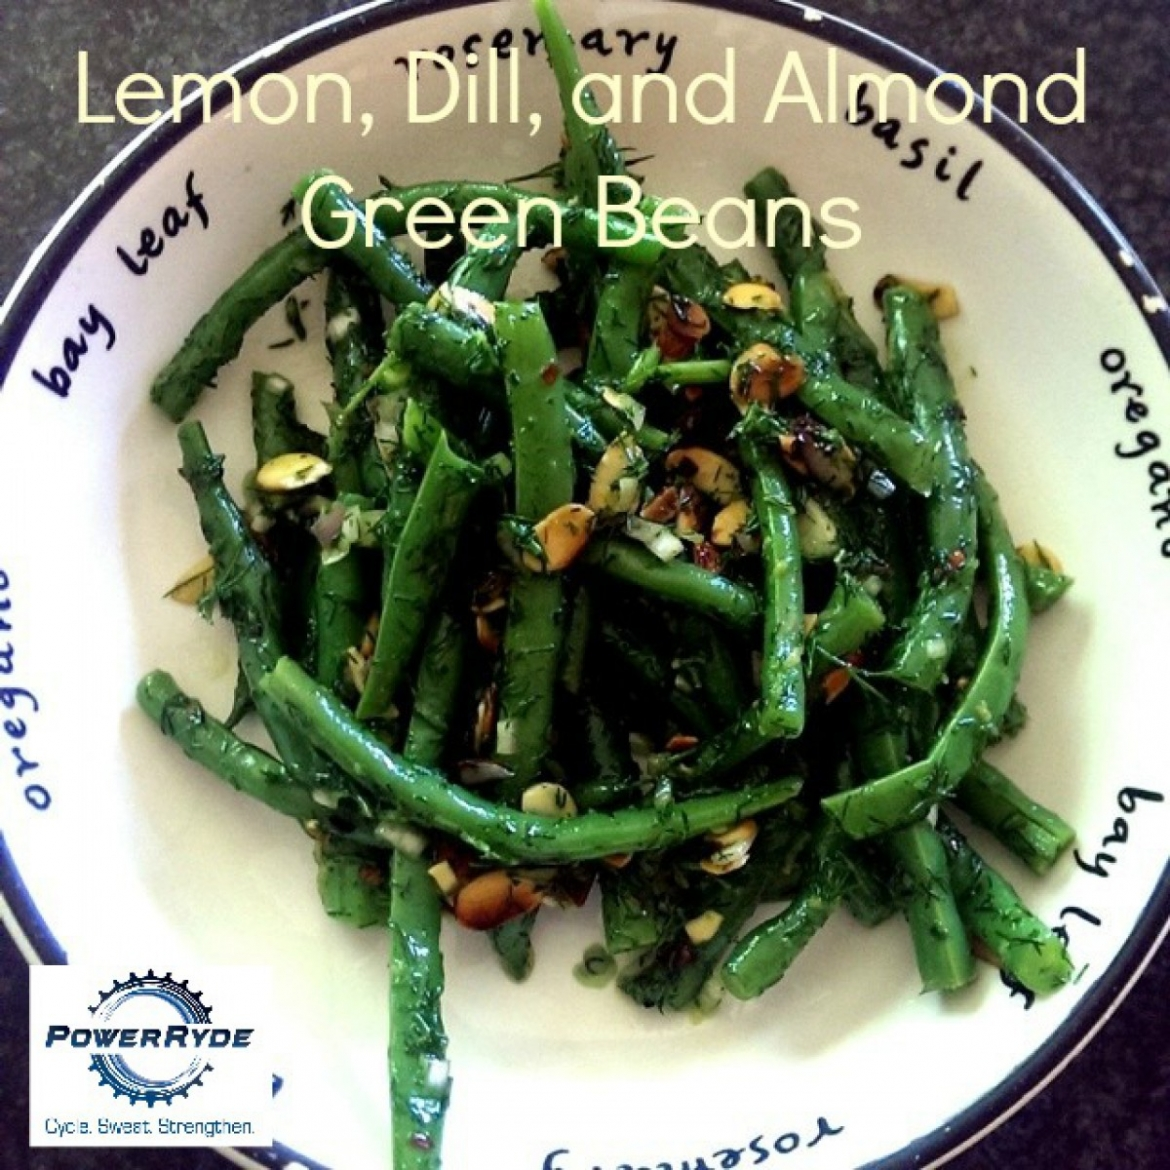 Lemon, Dill, and Almond Green Beans